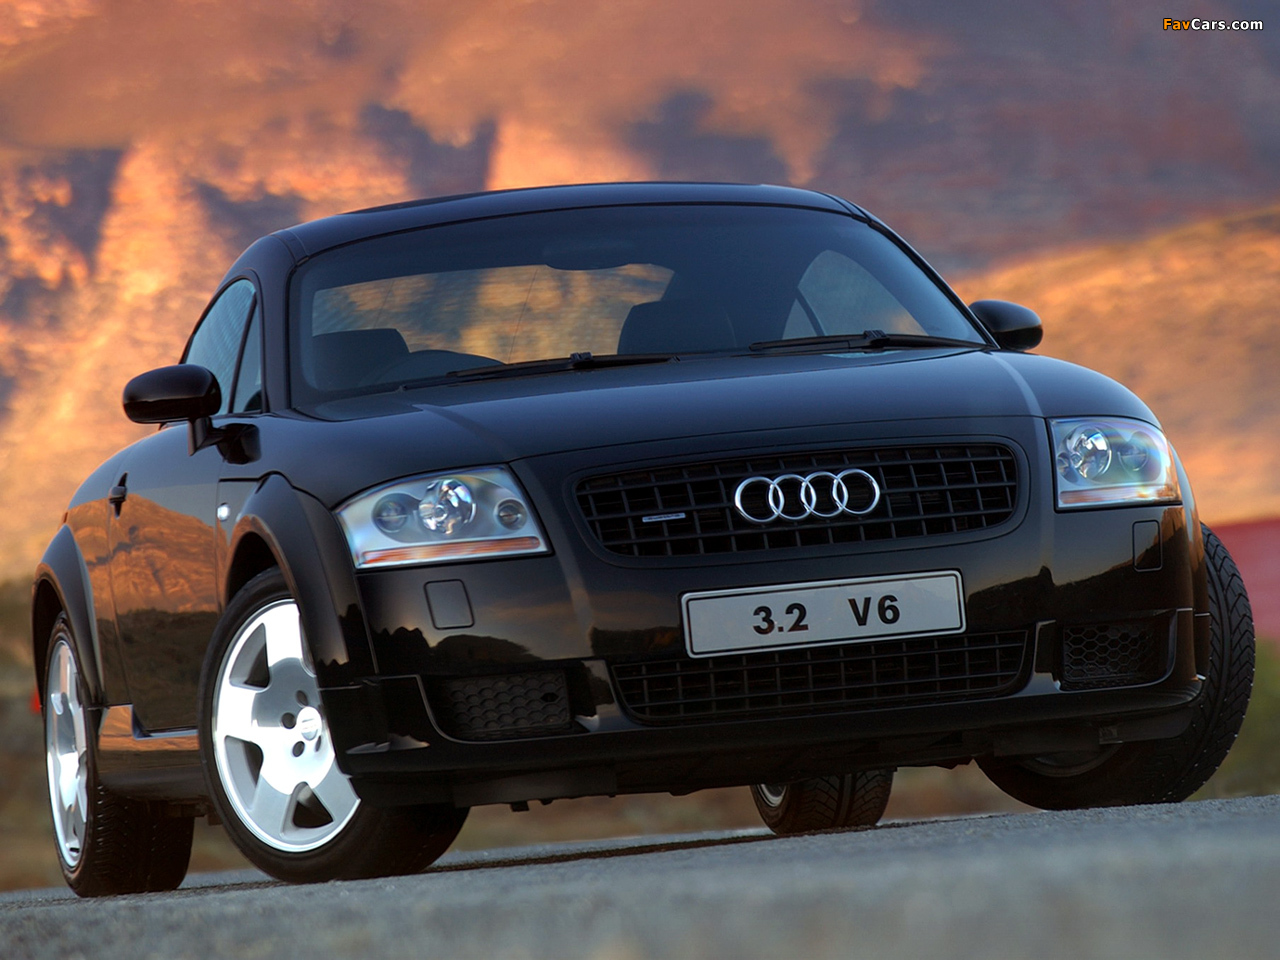 audi tt 3 2 quattro coupe za spec 8n 2003 06 wallpapers 1280x960. Black Bedroom Furniture Sets. Home Design Ideas